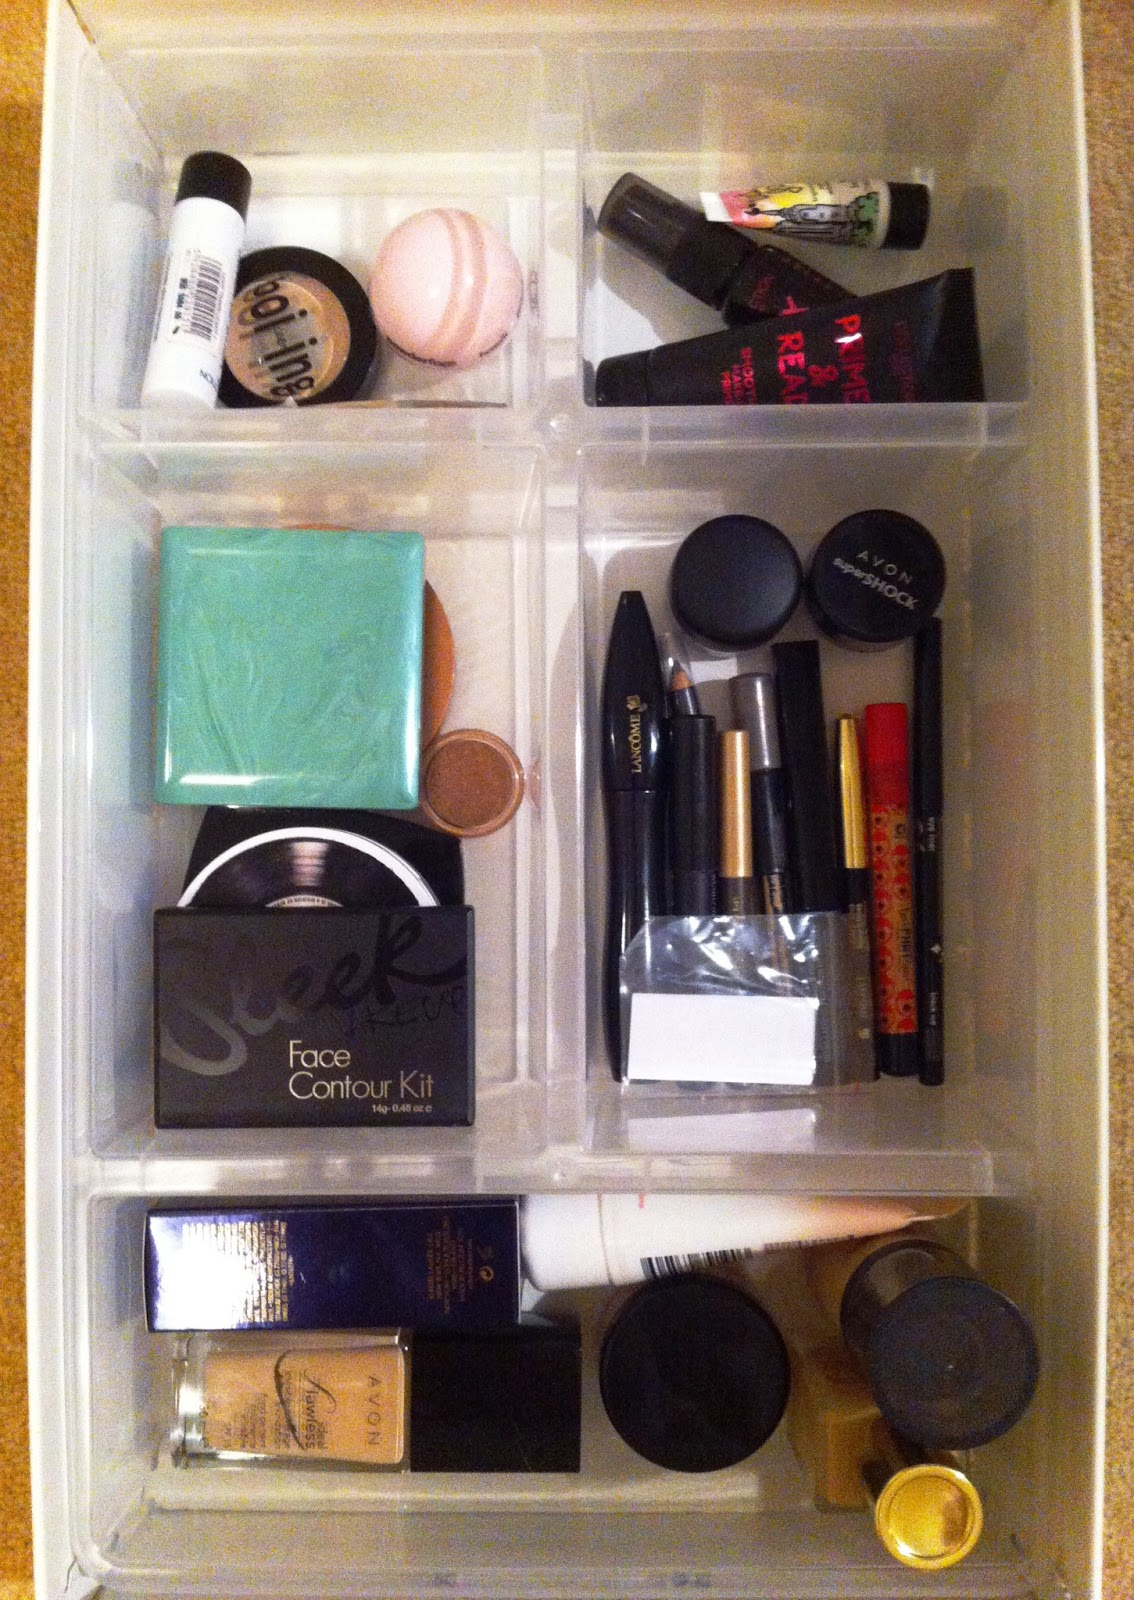 14.2.13 & Beauty Box: Ikea Helmer Makeup Storage Idea